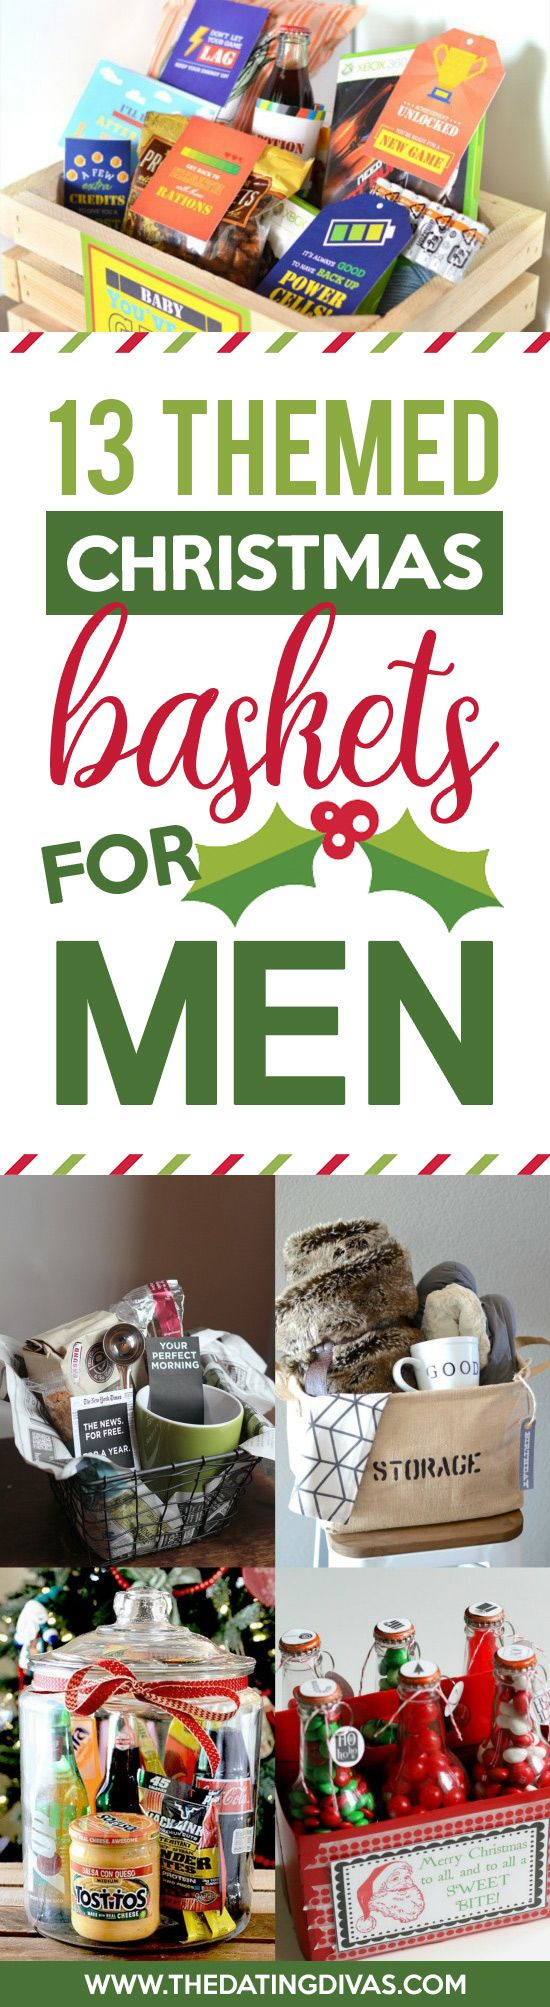 Best 25+ Christmas gifts for husband ideas on Pinterest ...